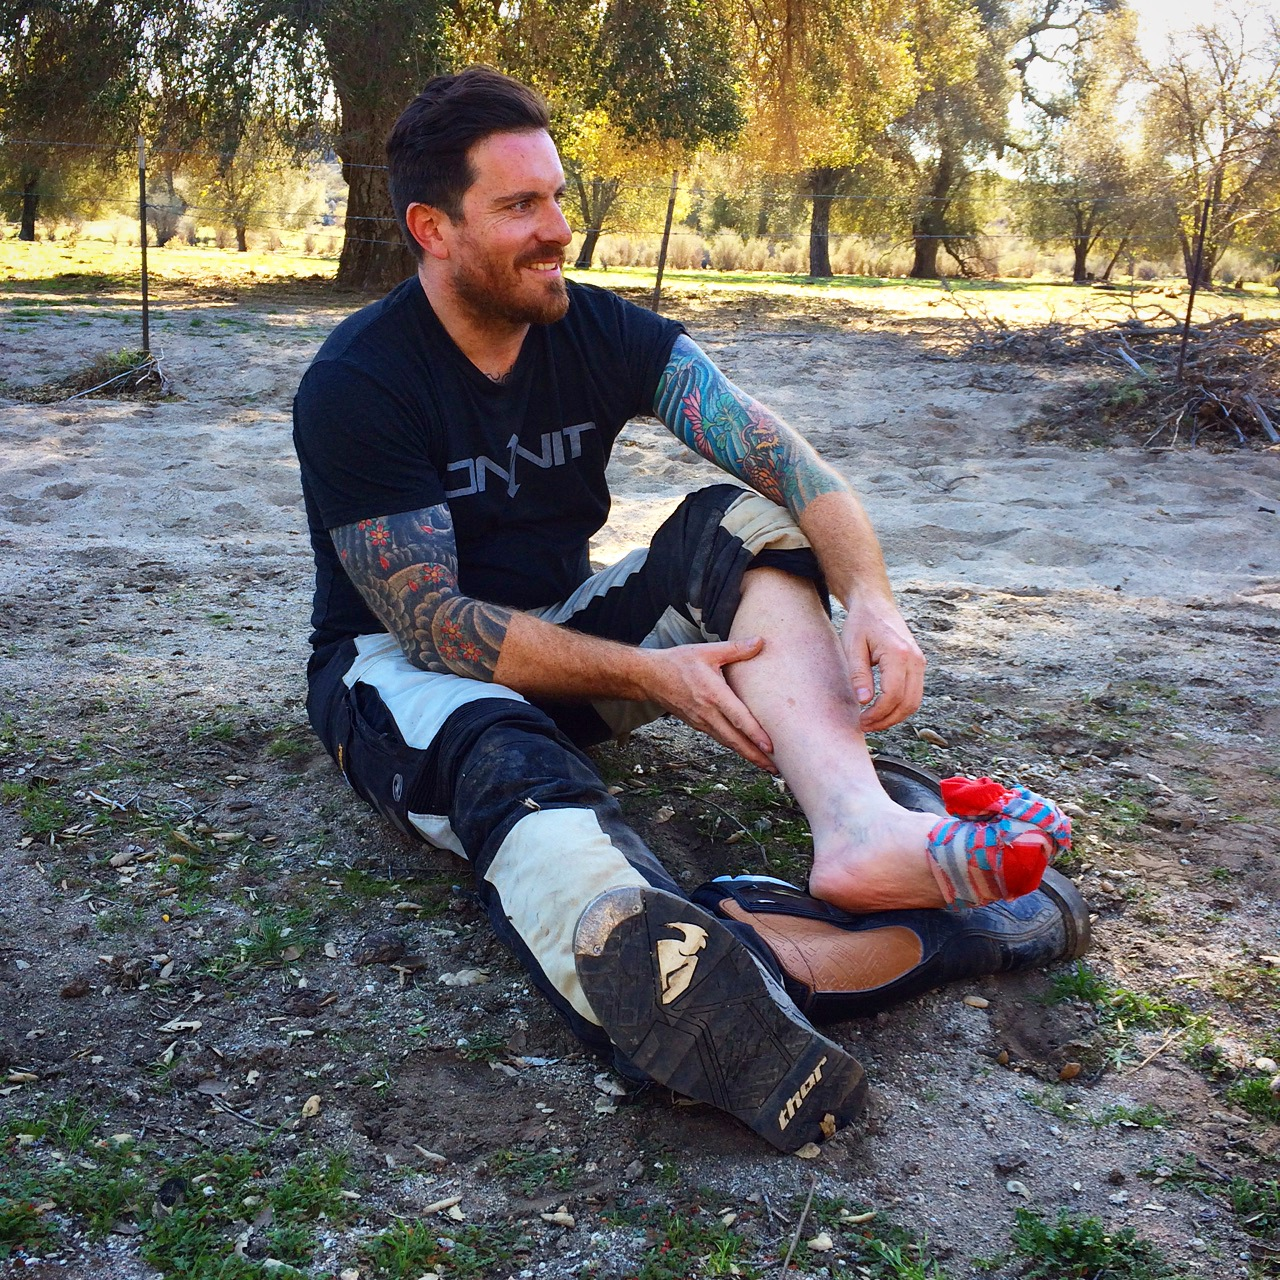 Seamus Mullen breaks his foot on a motorcycle trip in Baja California, Mexico